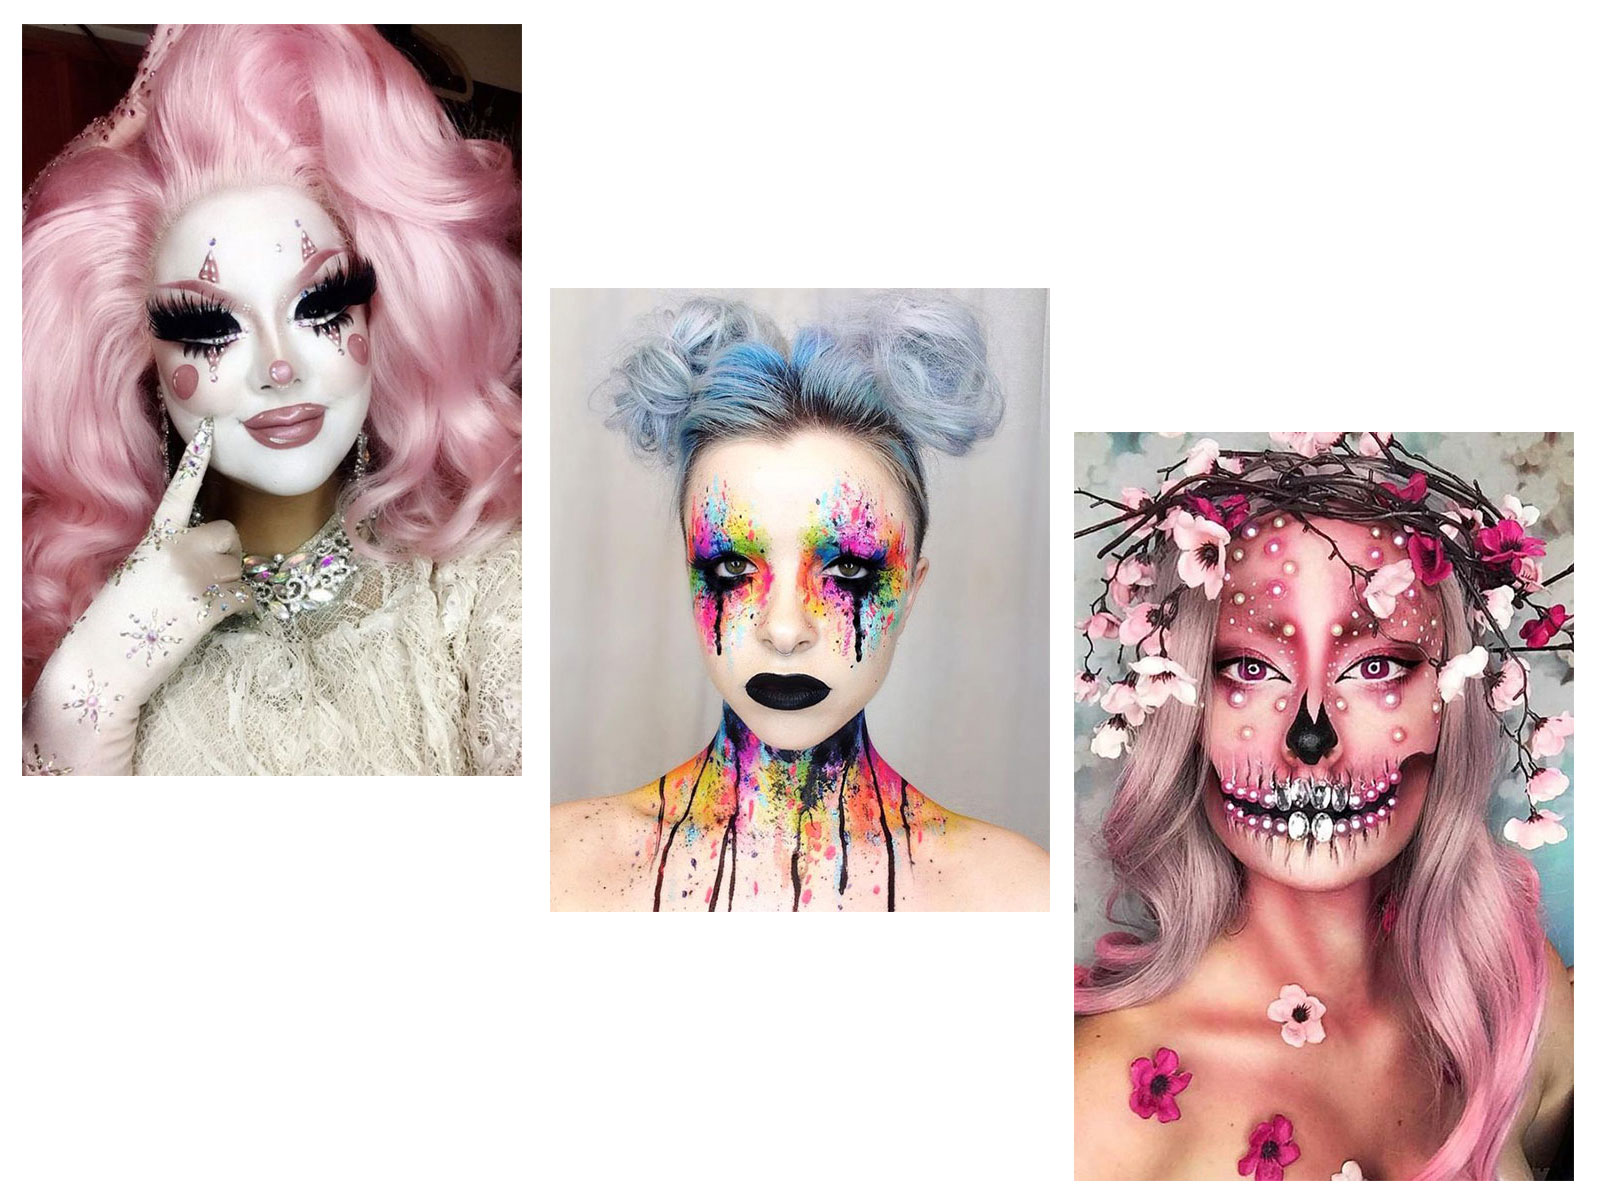 30-Creepy-Creative-Unique-Halloween-Hairstyle-Looks-Ideas-For-Girls-Women-2019-F